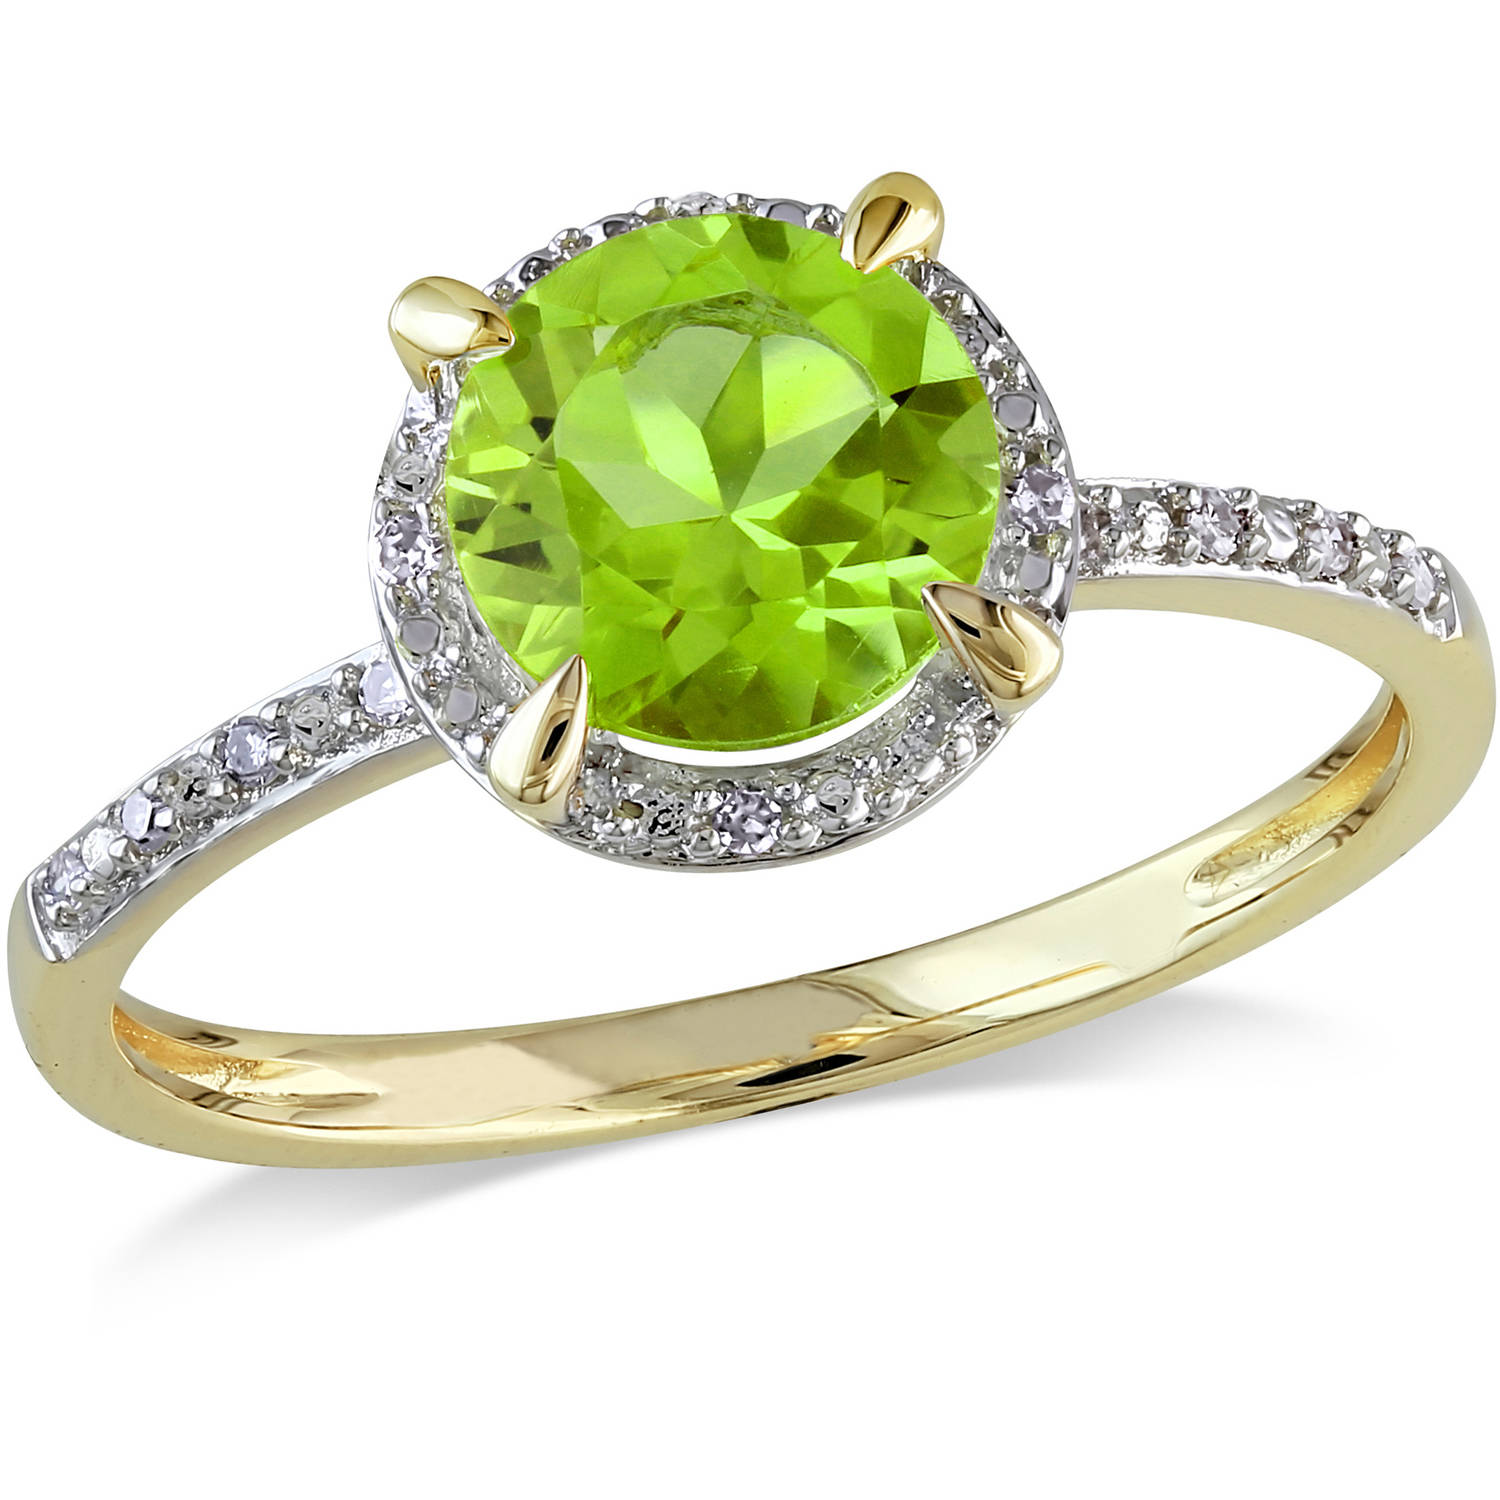 Tangelo 1-1/2 Carat T.G.W. Peridot and Diamond-Accent 10kt Yellow Gold Halo Ring